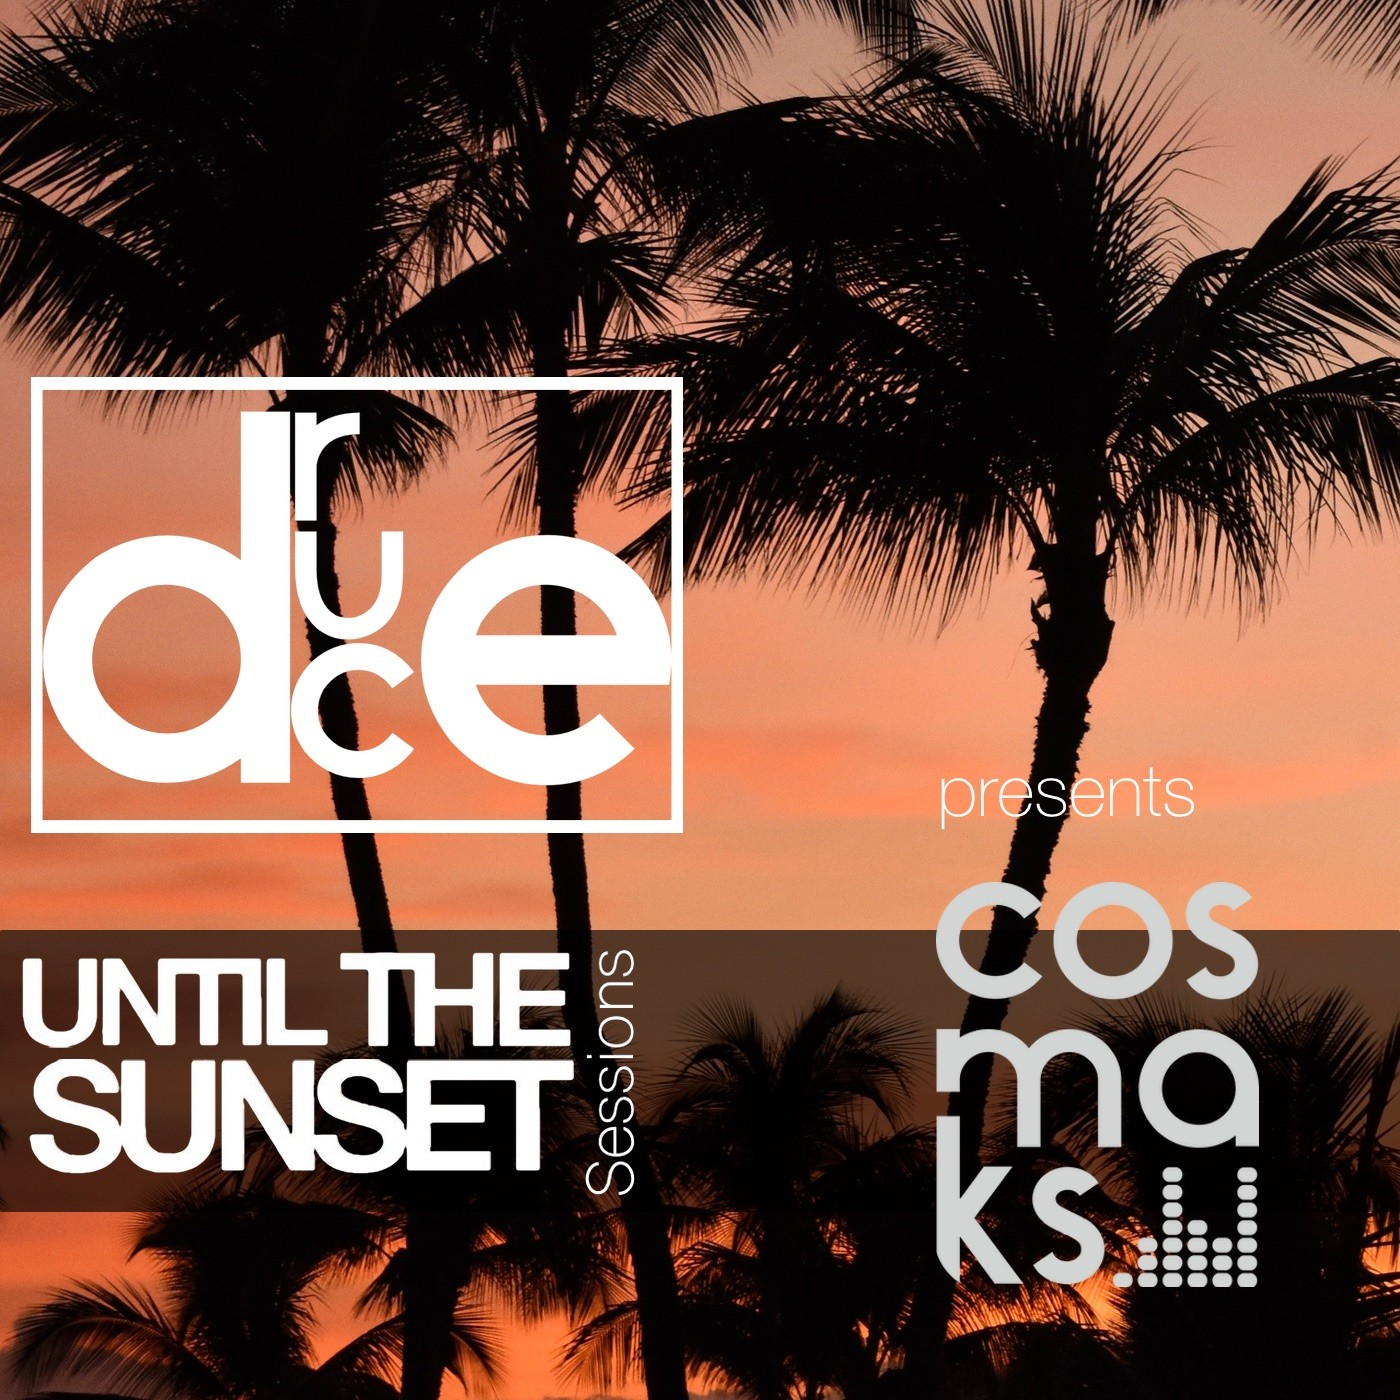 #121 Until The Sunset Sessions presents Cosmaks